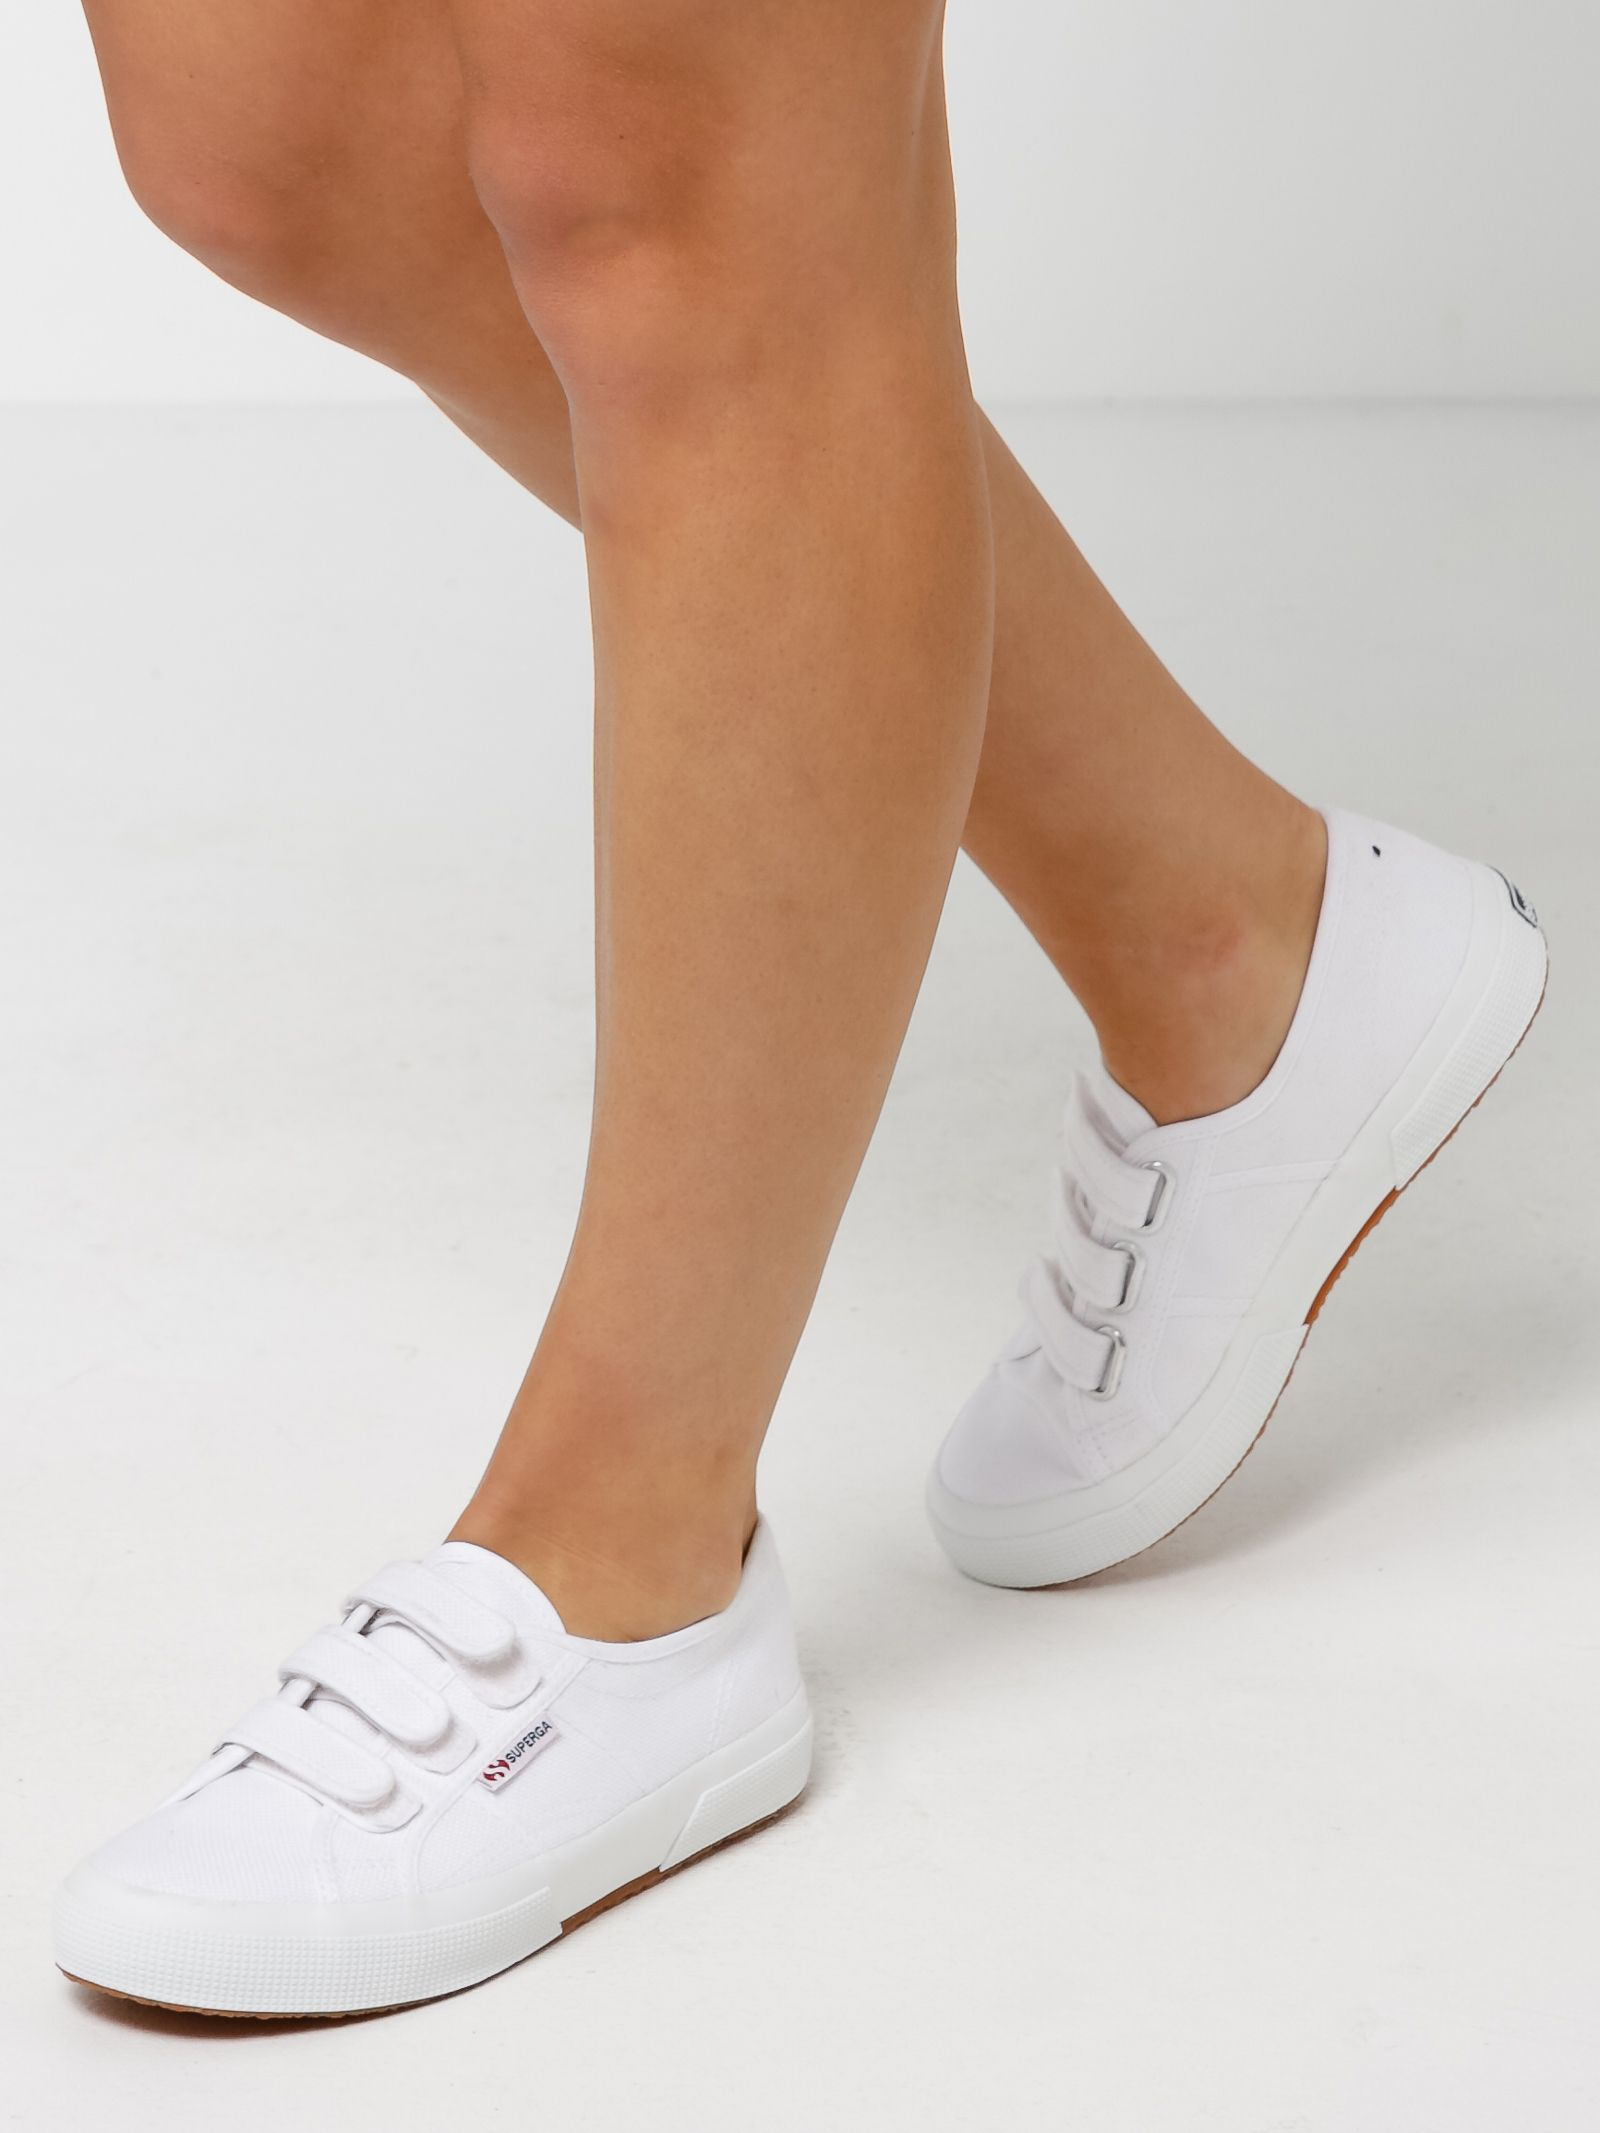 14d94e05b5 Buy Unisex 2750 Cotu 2 Velcro Strap Sneaker in White by Superga of White  color for only  89.99 at Glue Store. Unisex WHITE 2750 COTU 2 VELCRO STRAP  SNEAKER ...